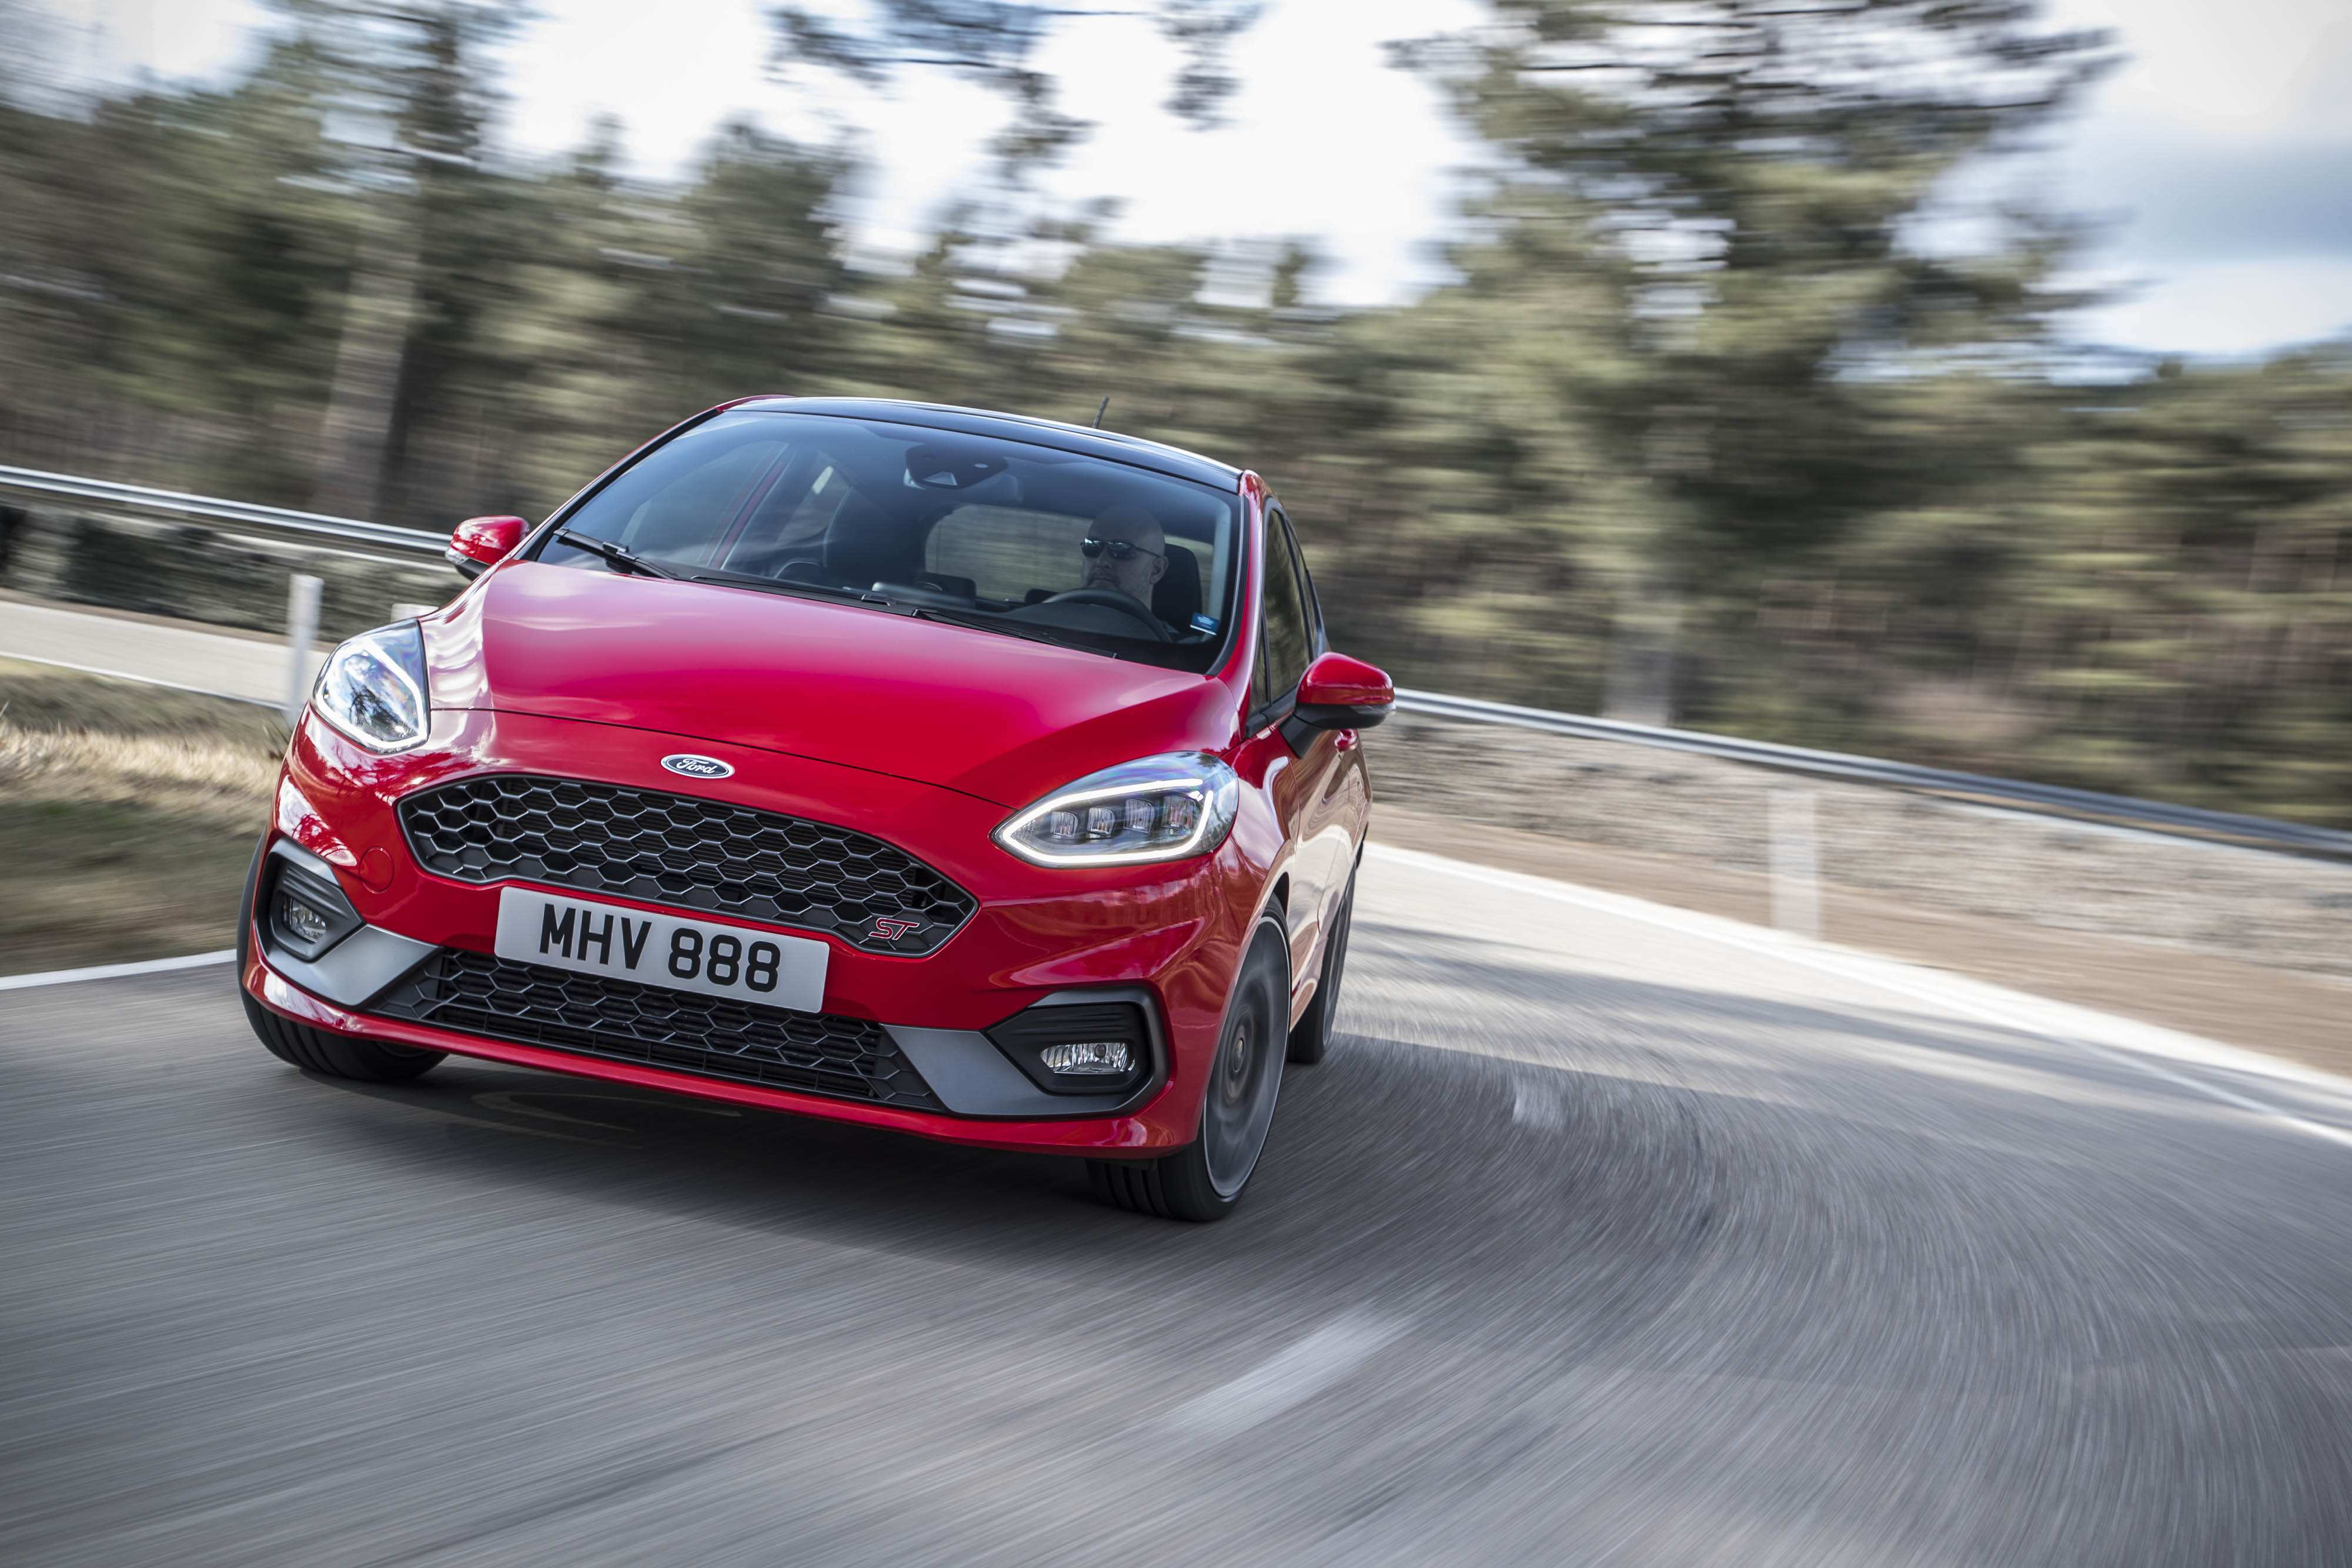 94 A 2020 Fiesta St New Review